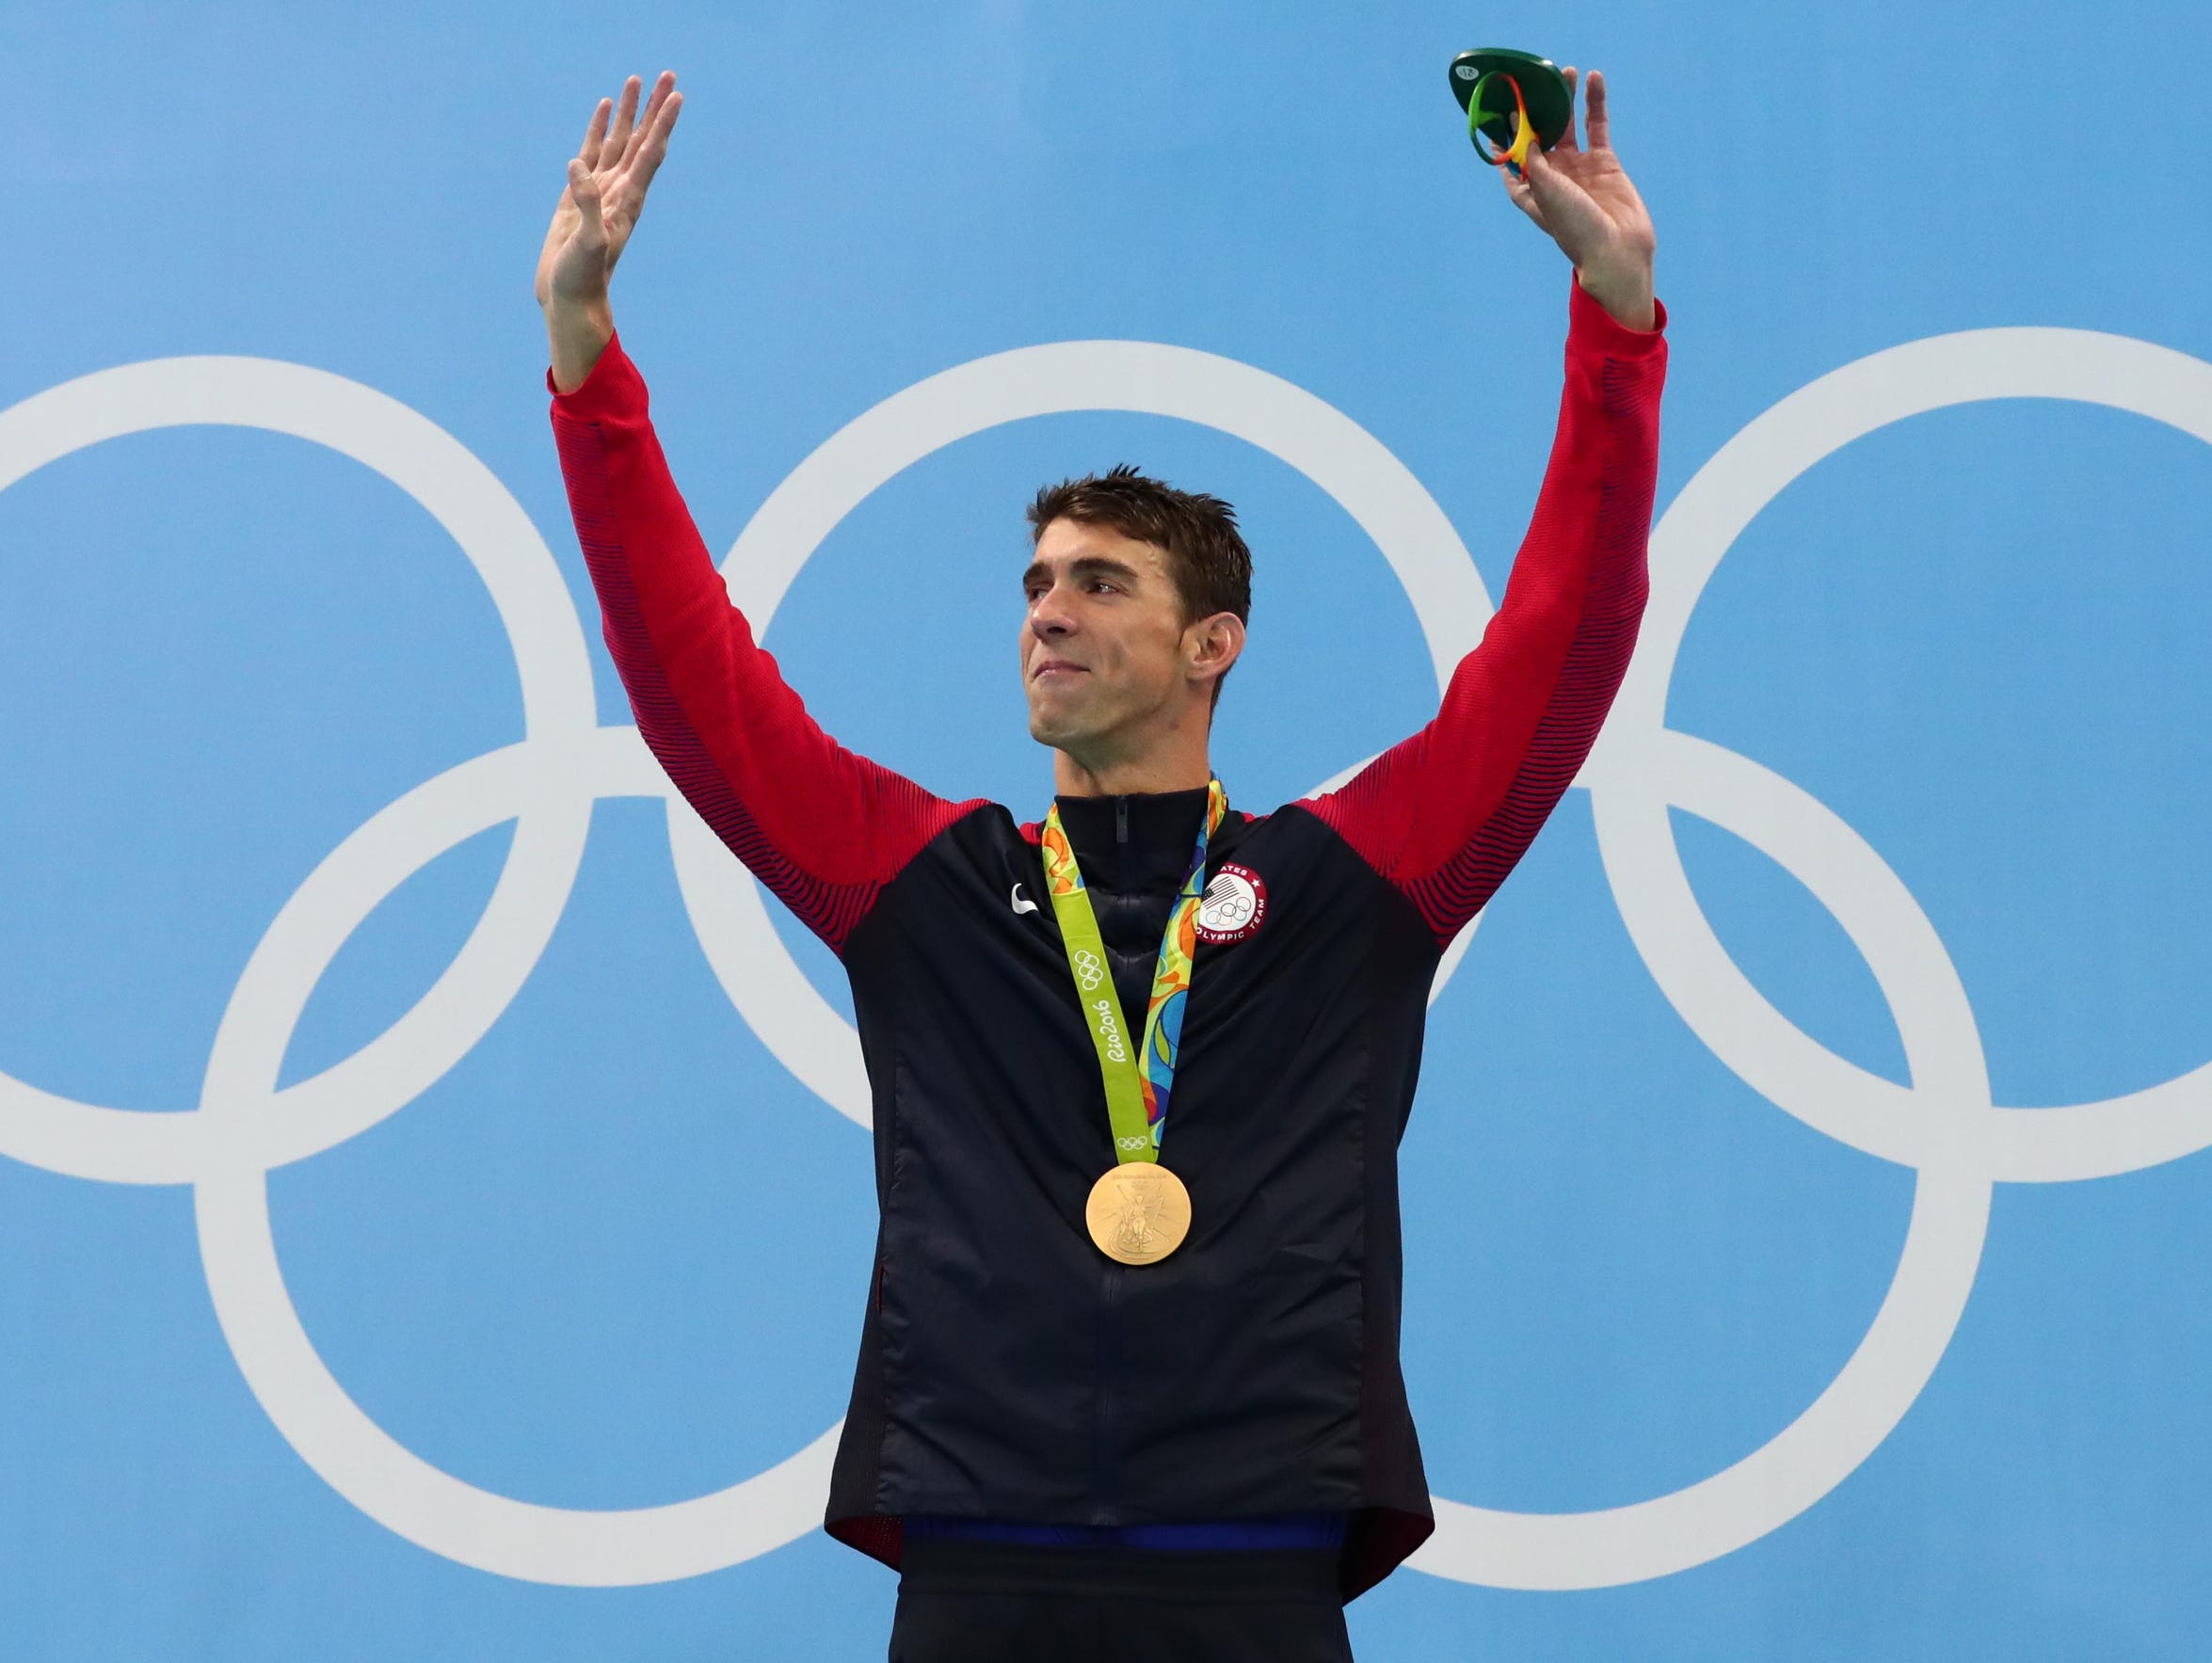 Michael Phelps waves goodbye at the Rio Olympic Games